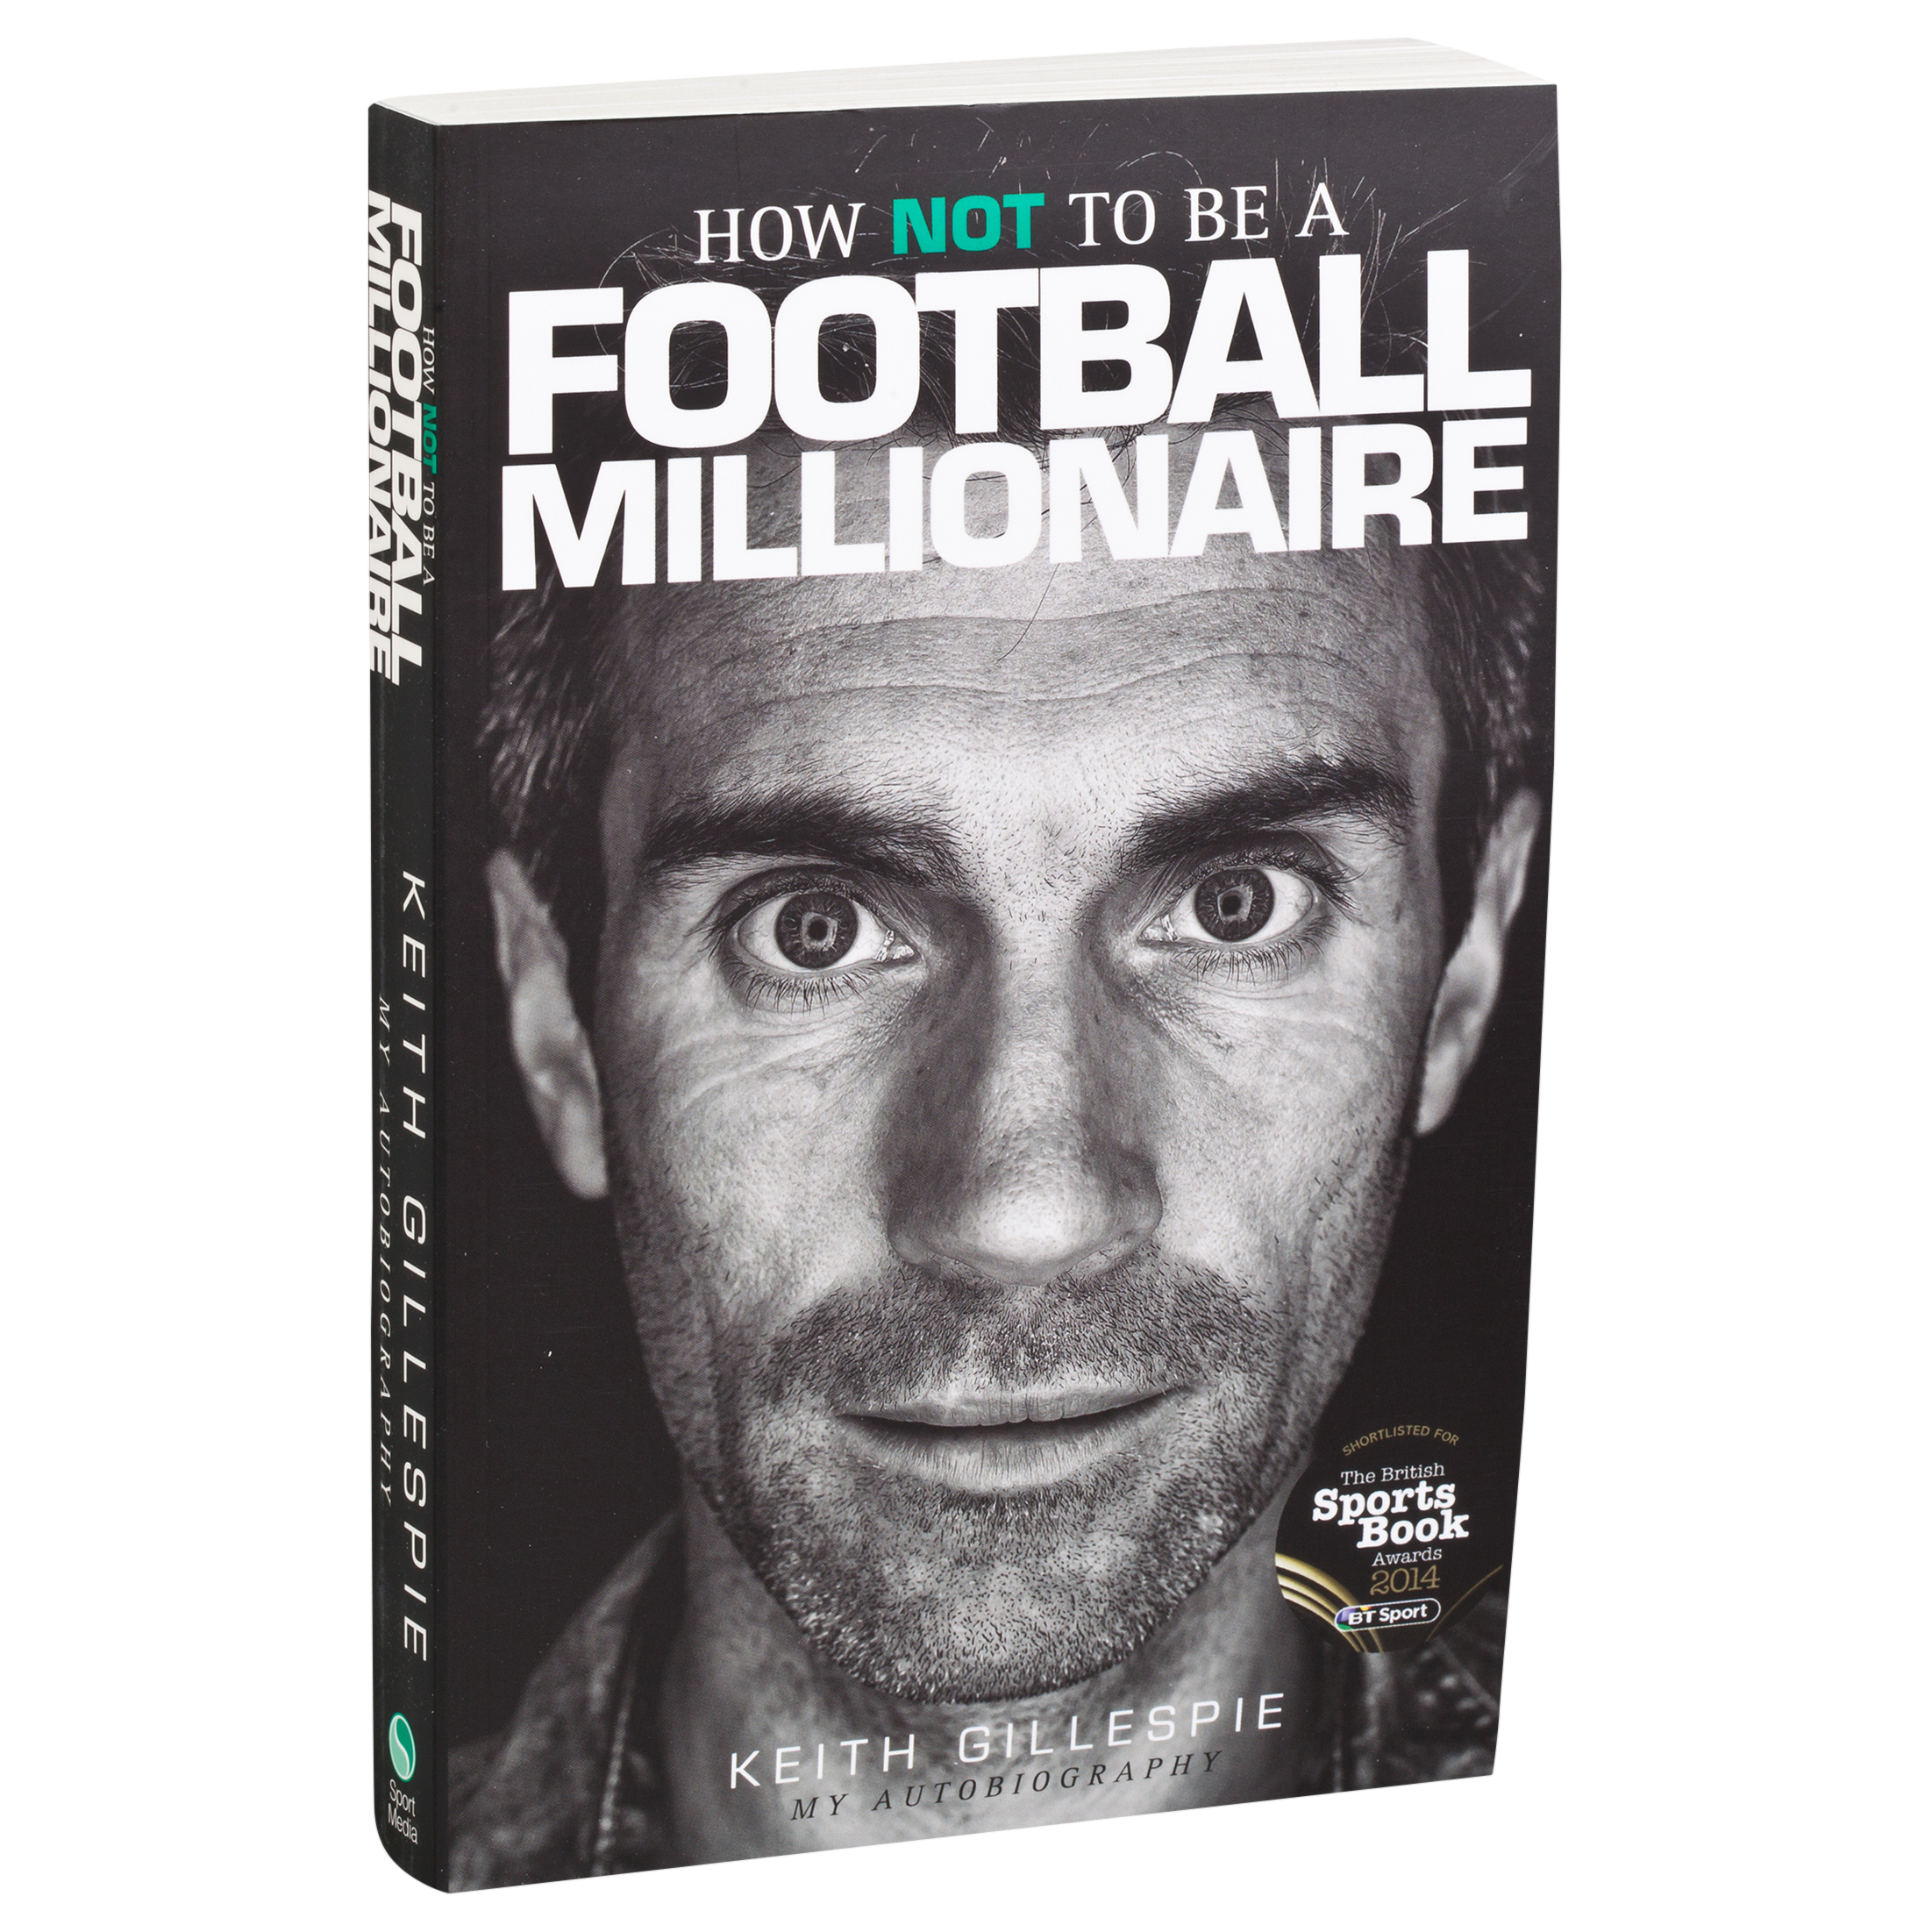 Manchester United Keith Gillespie My Autobiography - How Not To Be A Football Millionaire Paperback Book